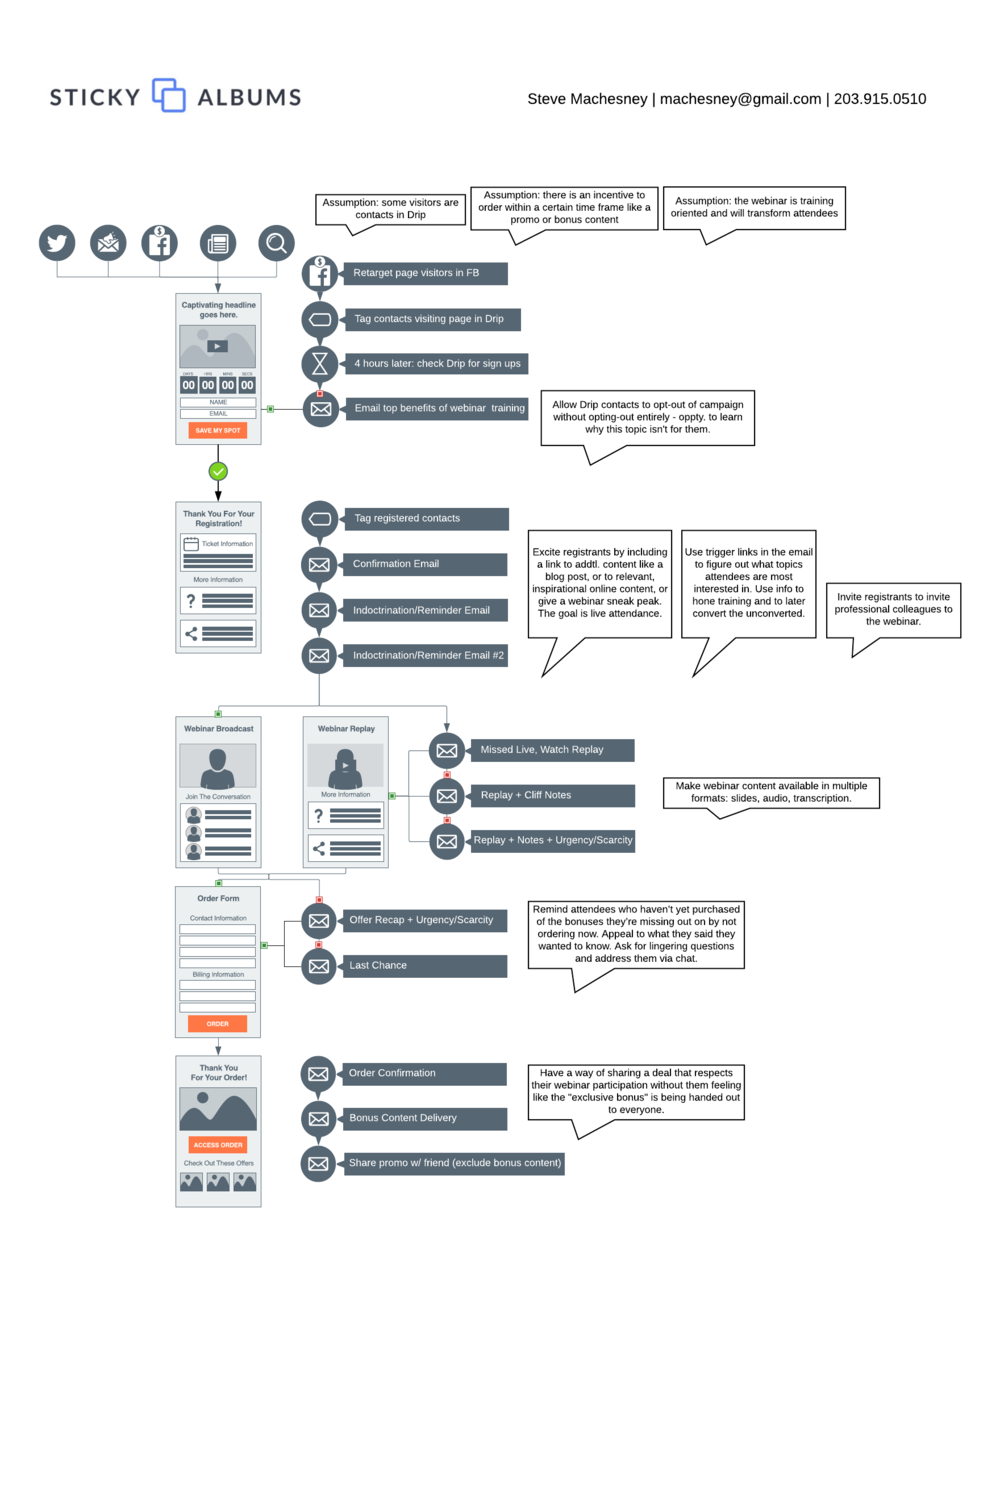 StickyAlbums- Webinar Funnel - Page 1.png